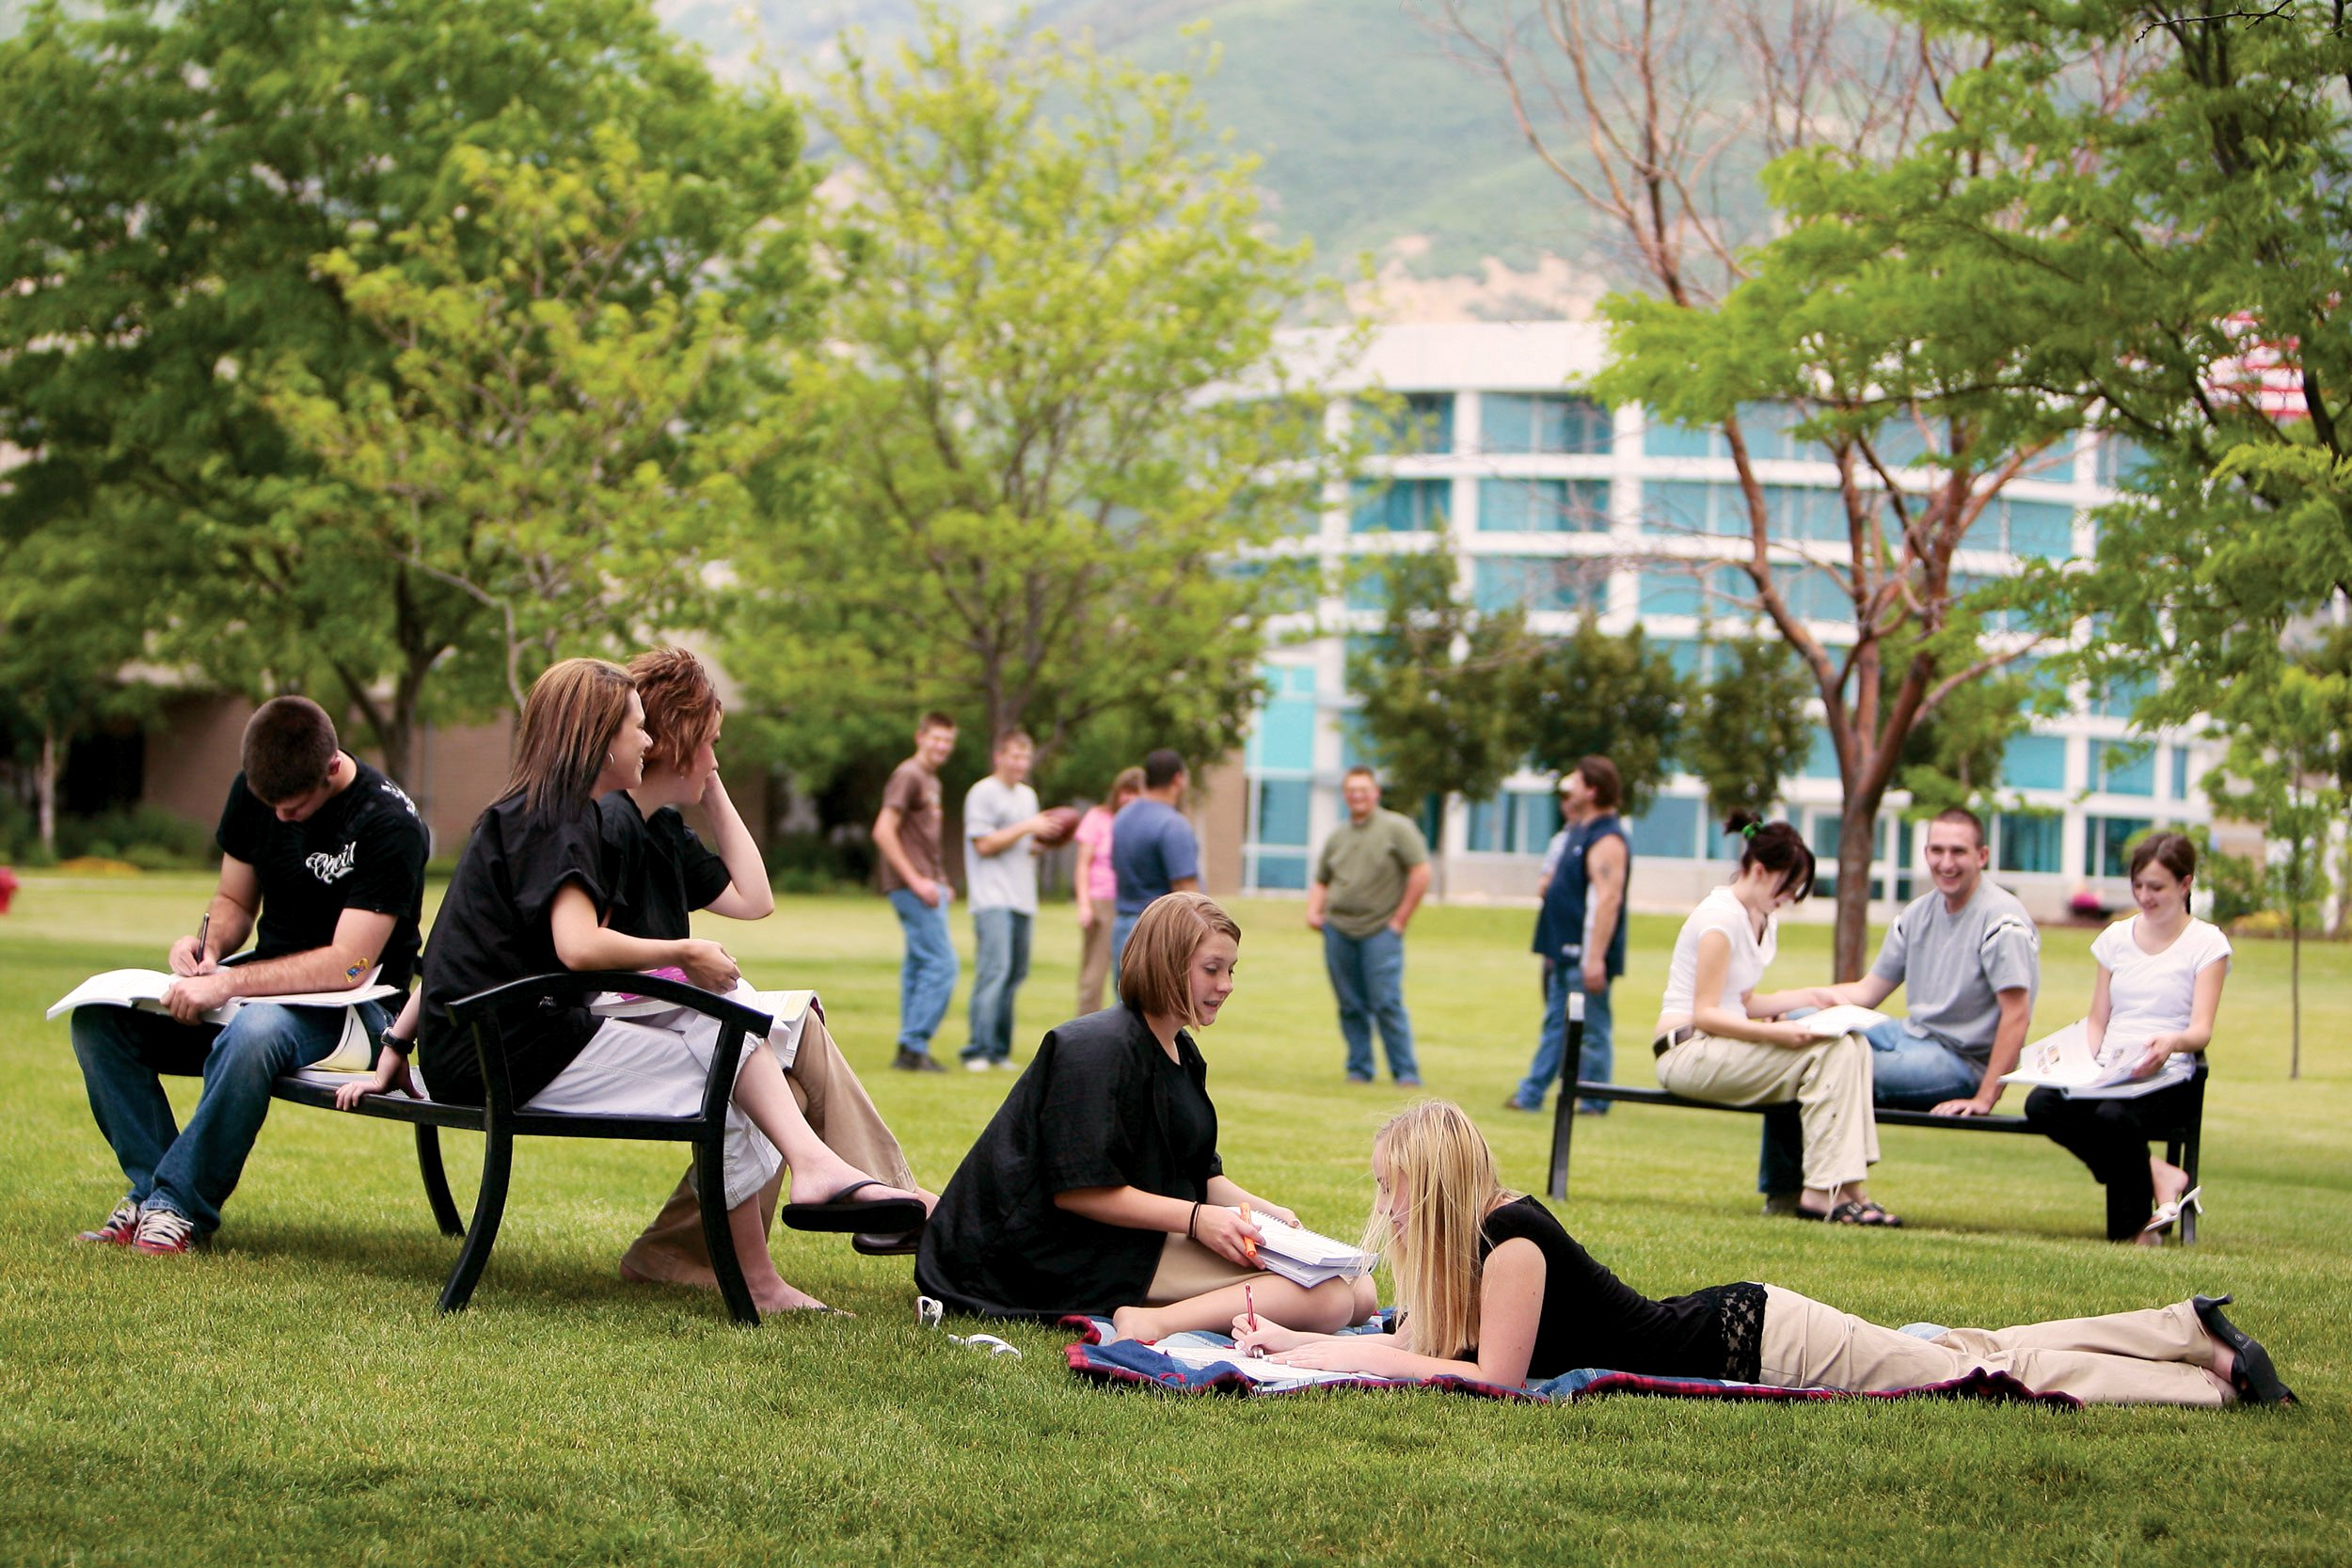 Group of students. outside and hanging out on the grass